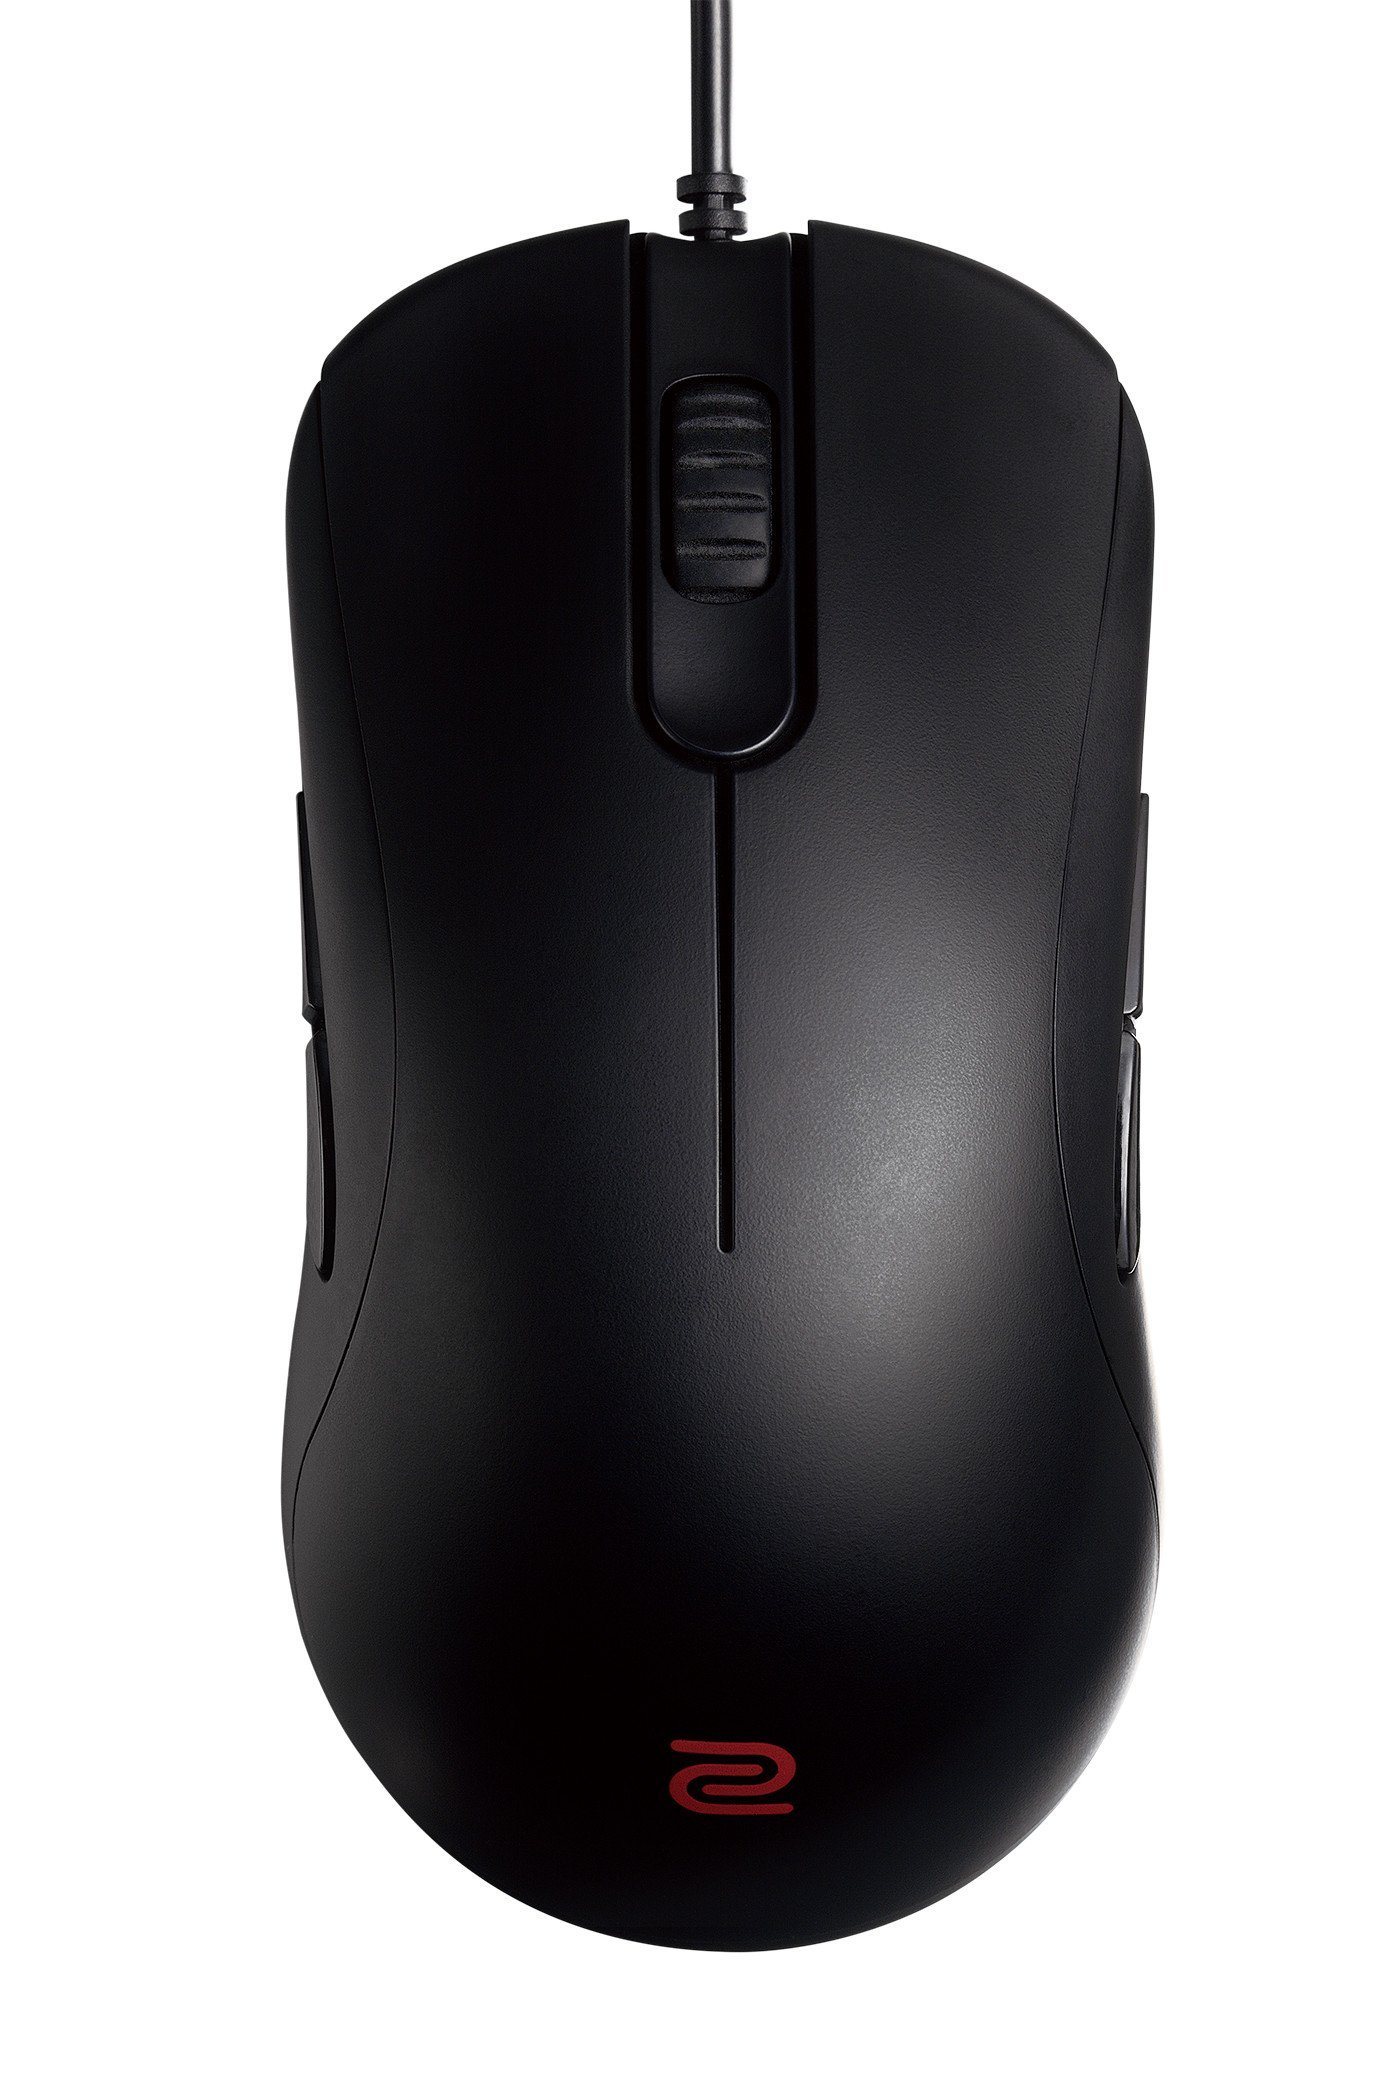 BenQ ZOWIE ZA11 Ambidextrous Gaming Mouse for Esports (Large) by BenQ